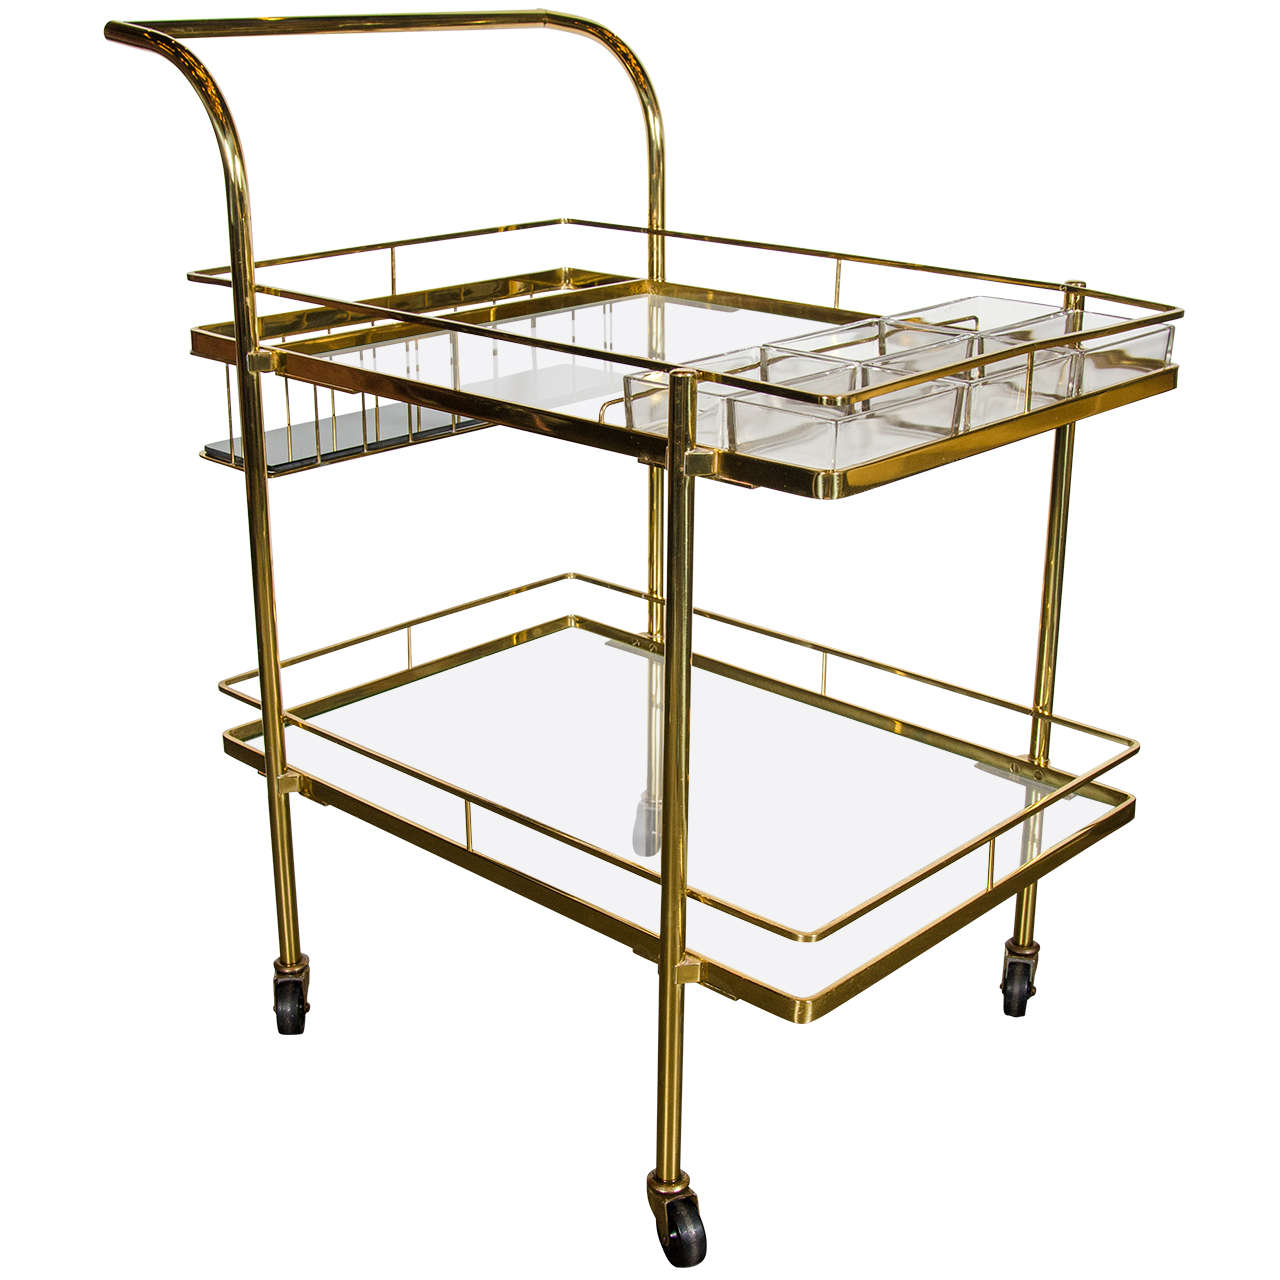 sophisticated midcentury modern bar cart in brass with glass  - sophisticated midcentury modern bar cart in brass with glass shelves